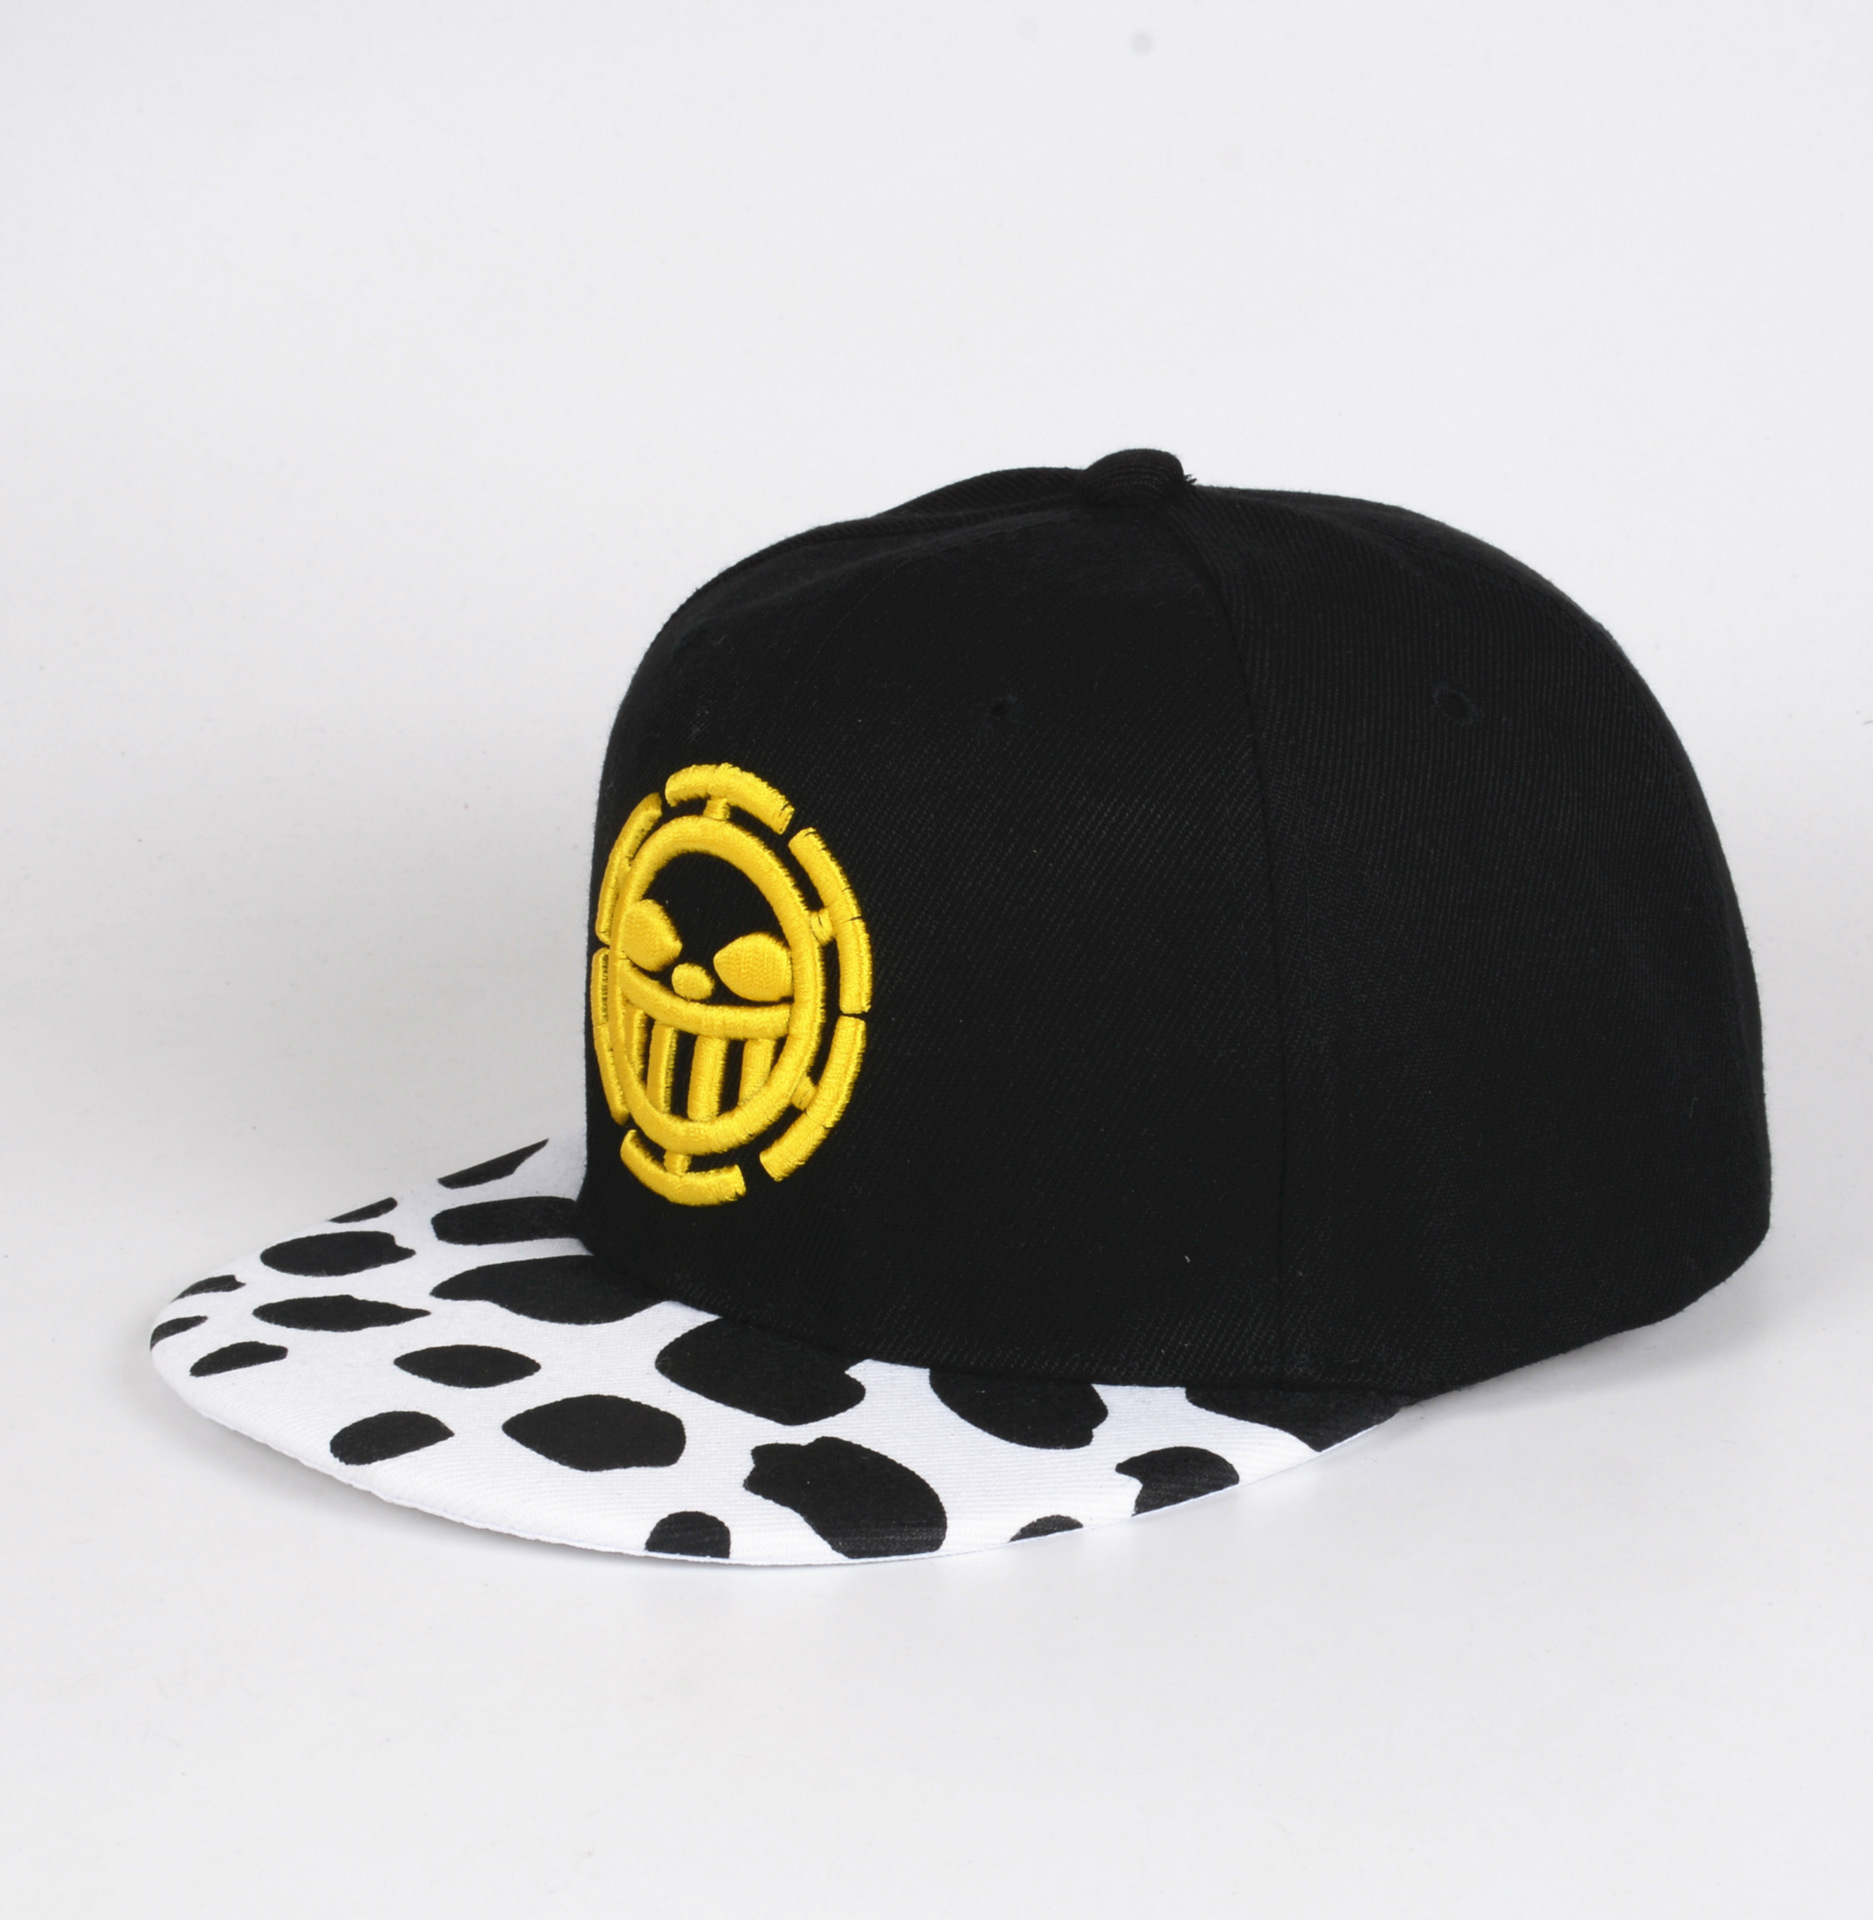 Anime One Piece Trafalgar Law Sign Skull Head Baseball Caps Sunhat Cosplay  Hats-in Boys Costume Accessories from Novelty   Special Use on  Aliexpress.com ... 16d929950c6e